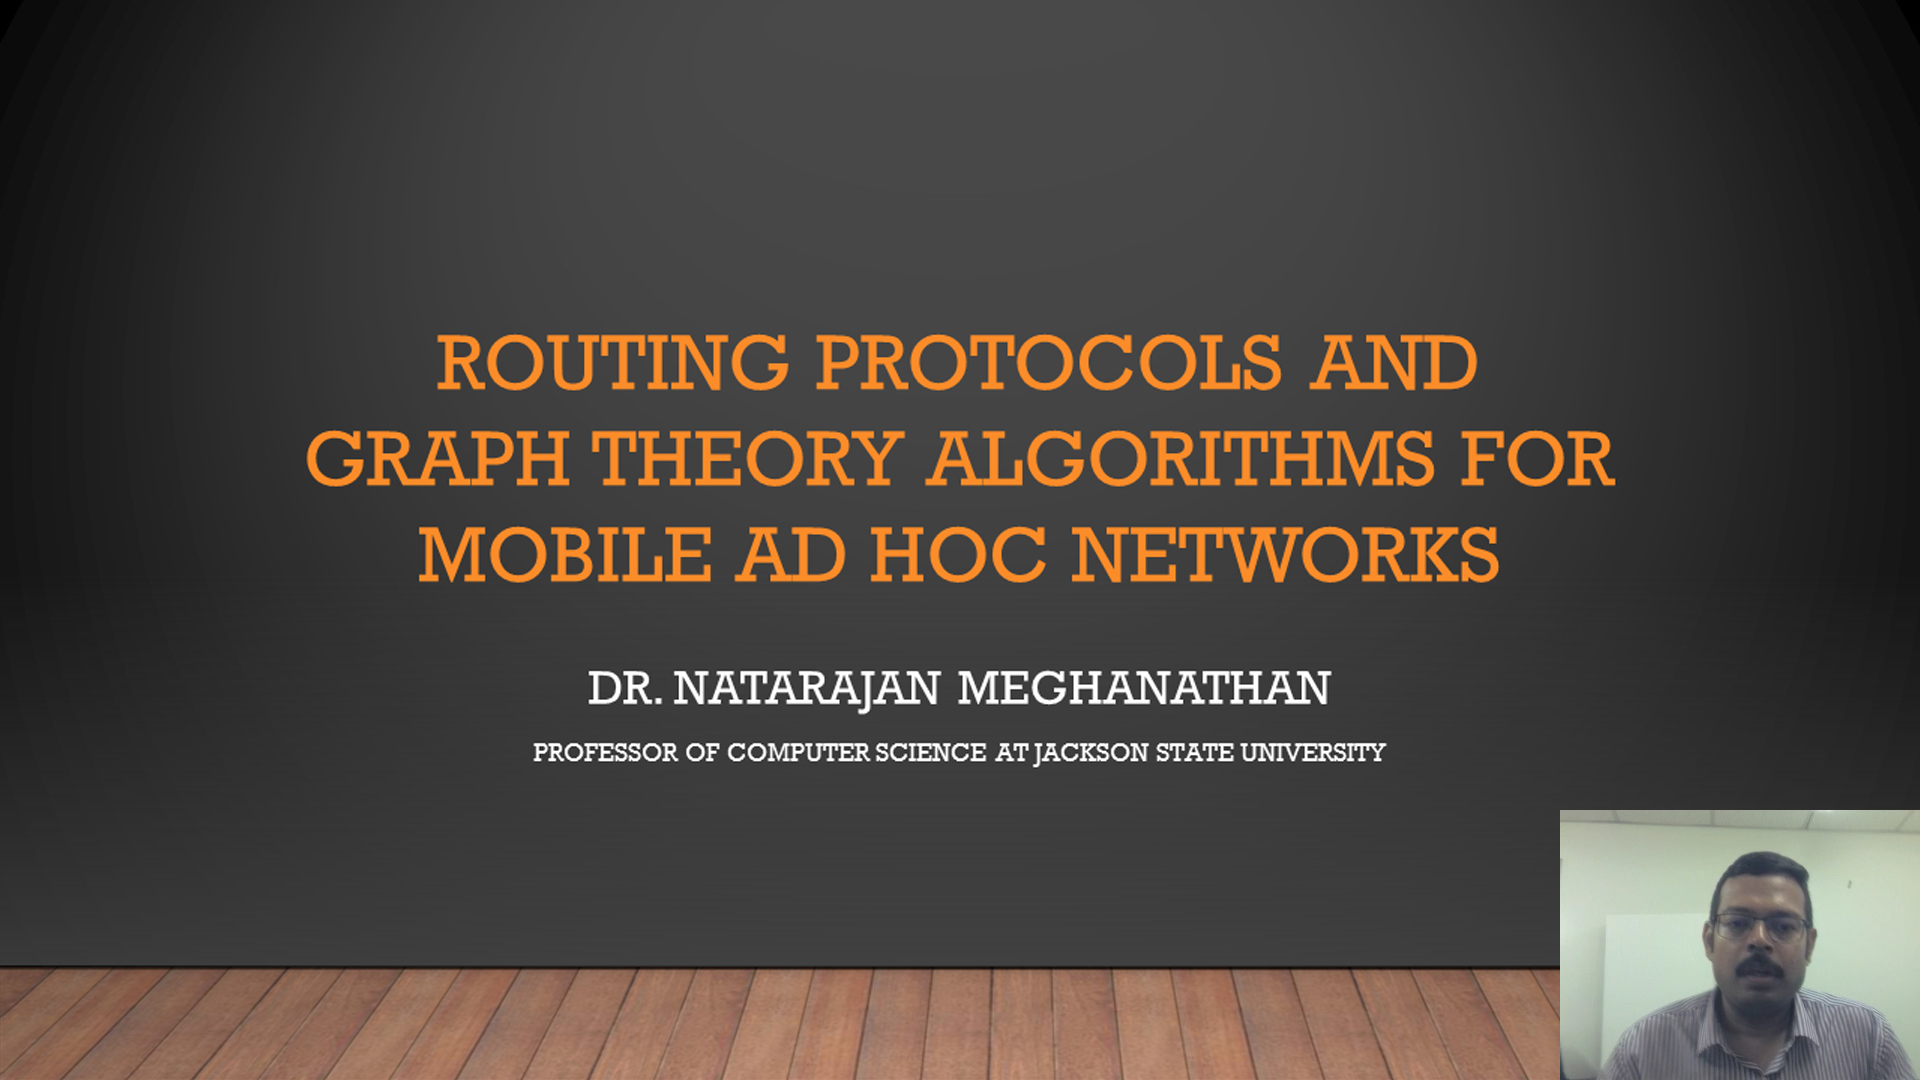 Routing Protocols and Graph Theory Algorithms for Mobile Ad Hoc Networks